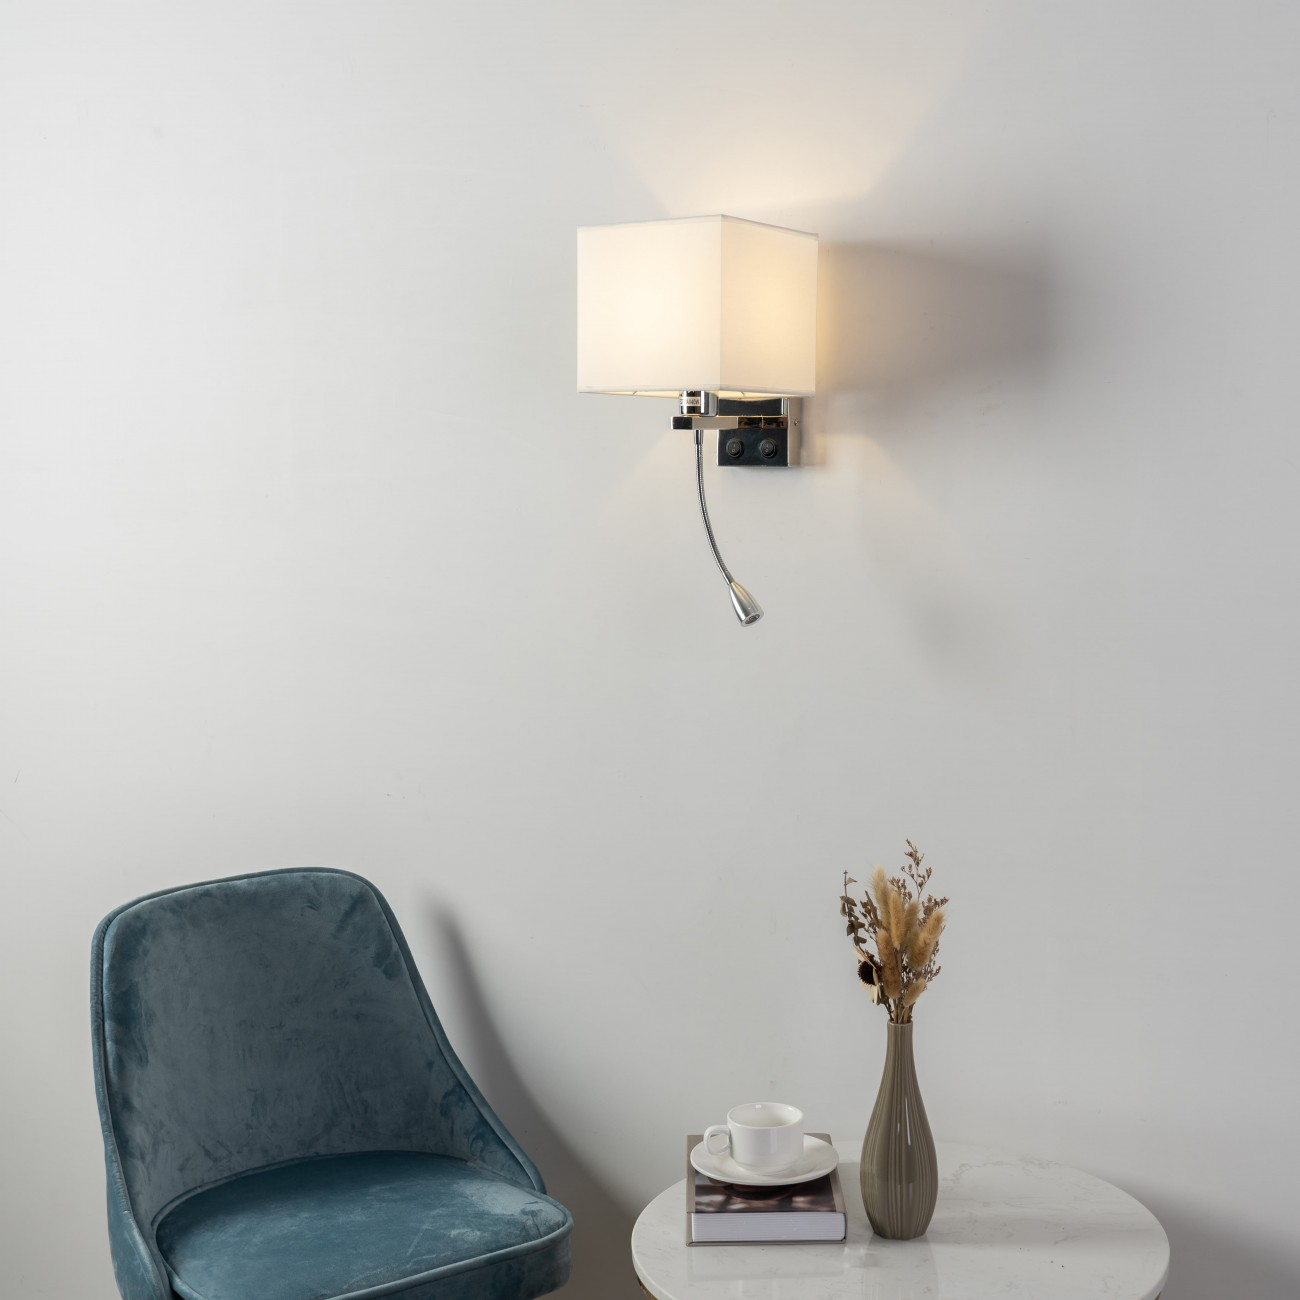 Square Shaped Wall Mounted Reading